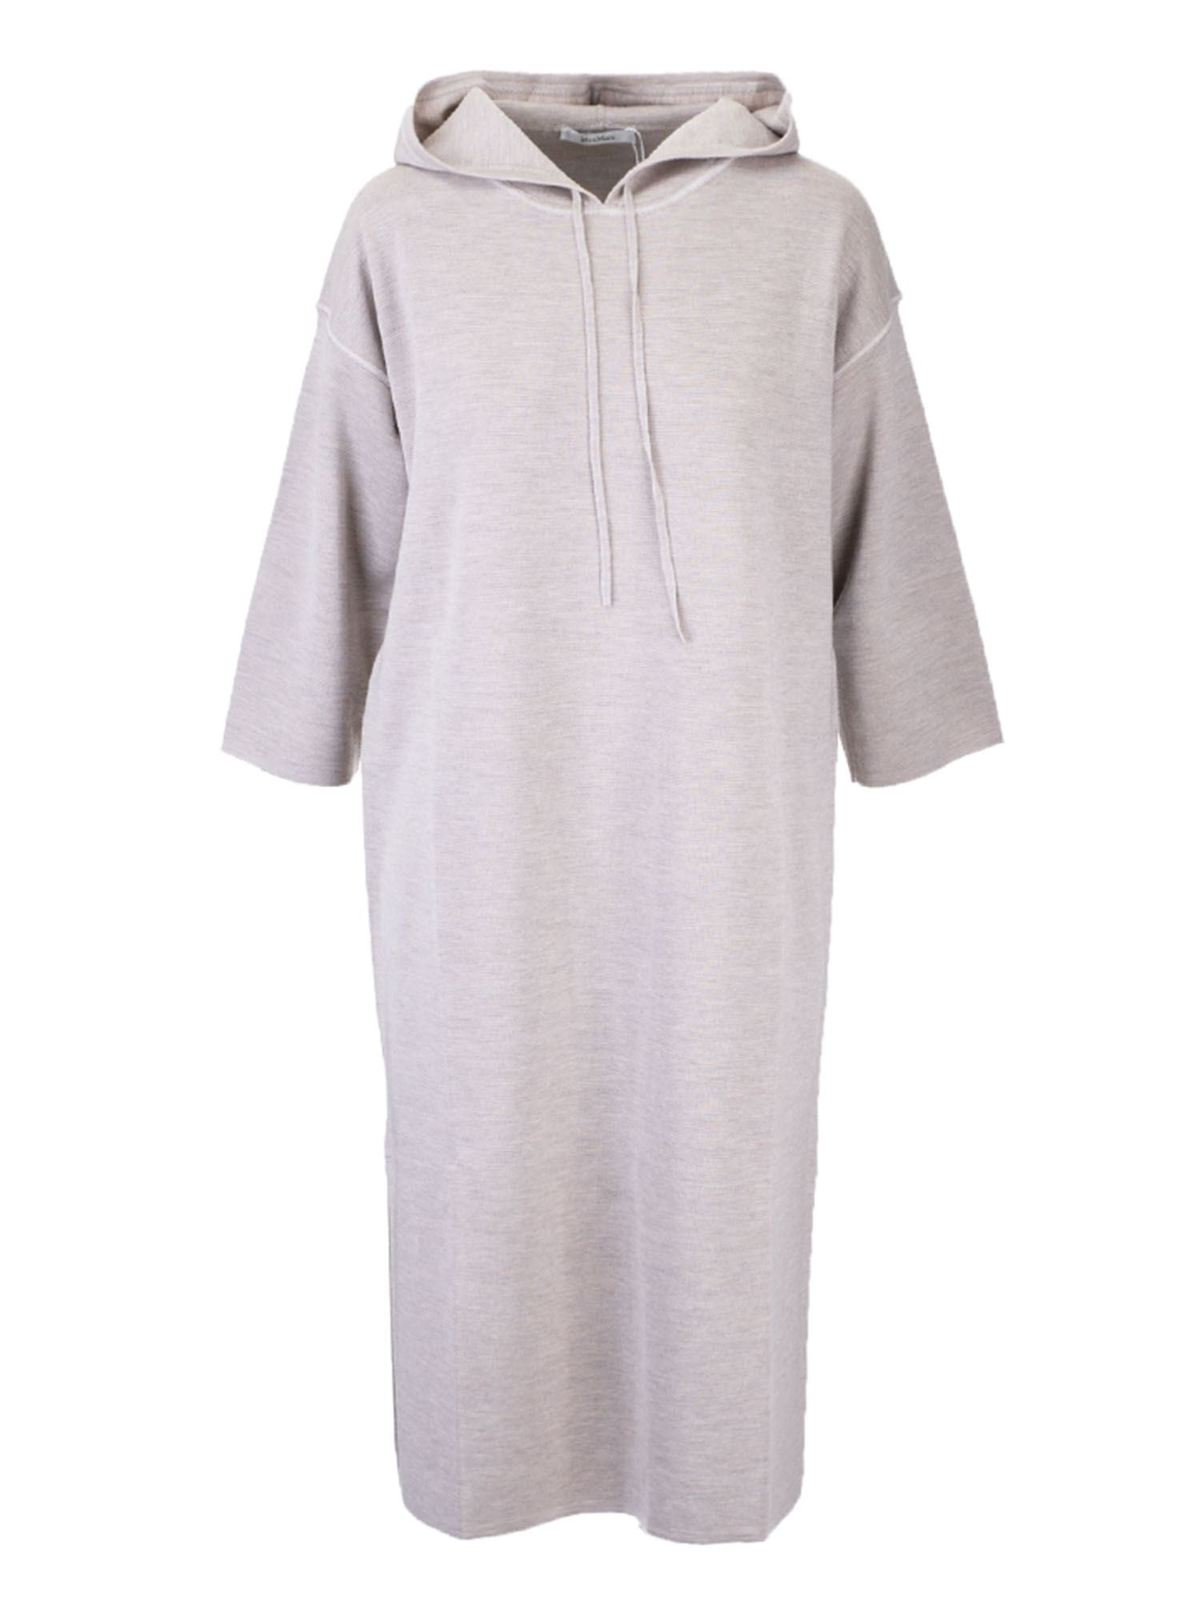 Max Mara Dresses LERICI DRESS IN GREY